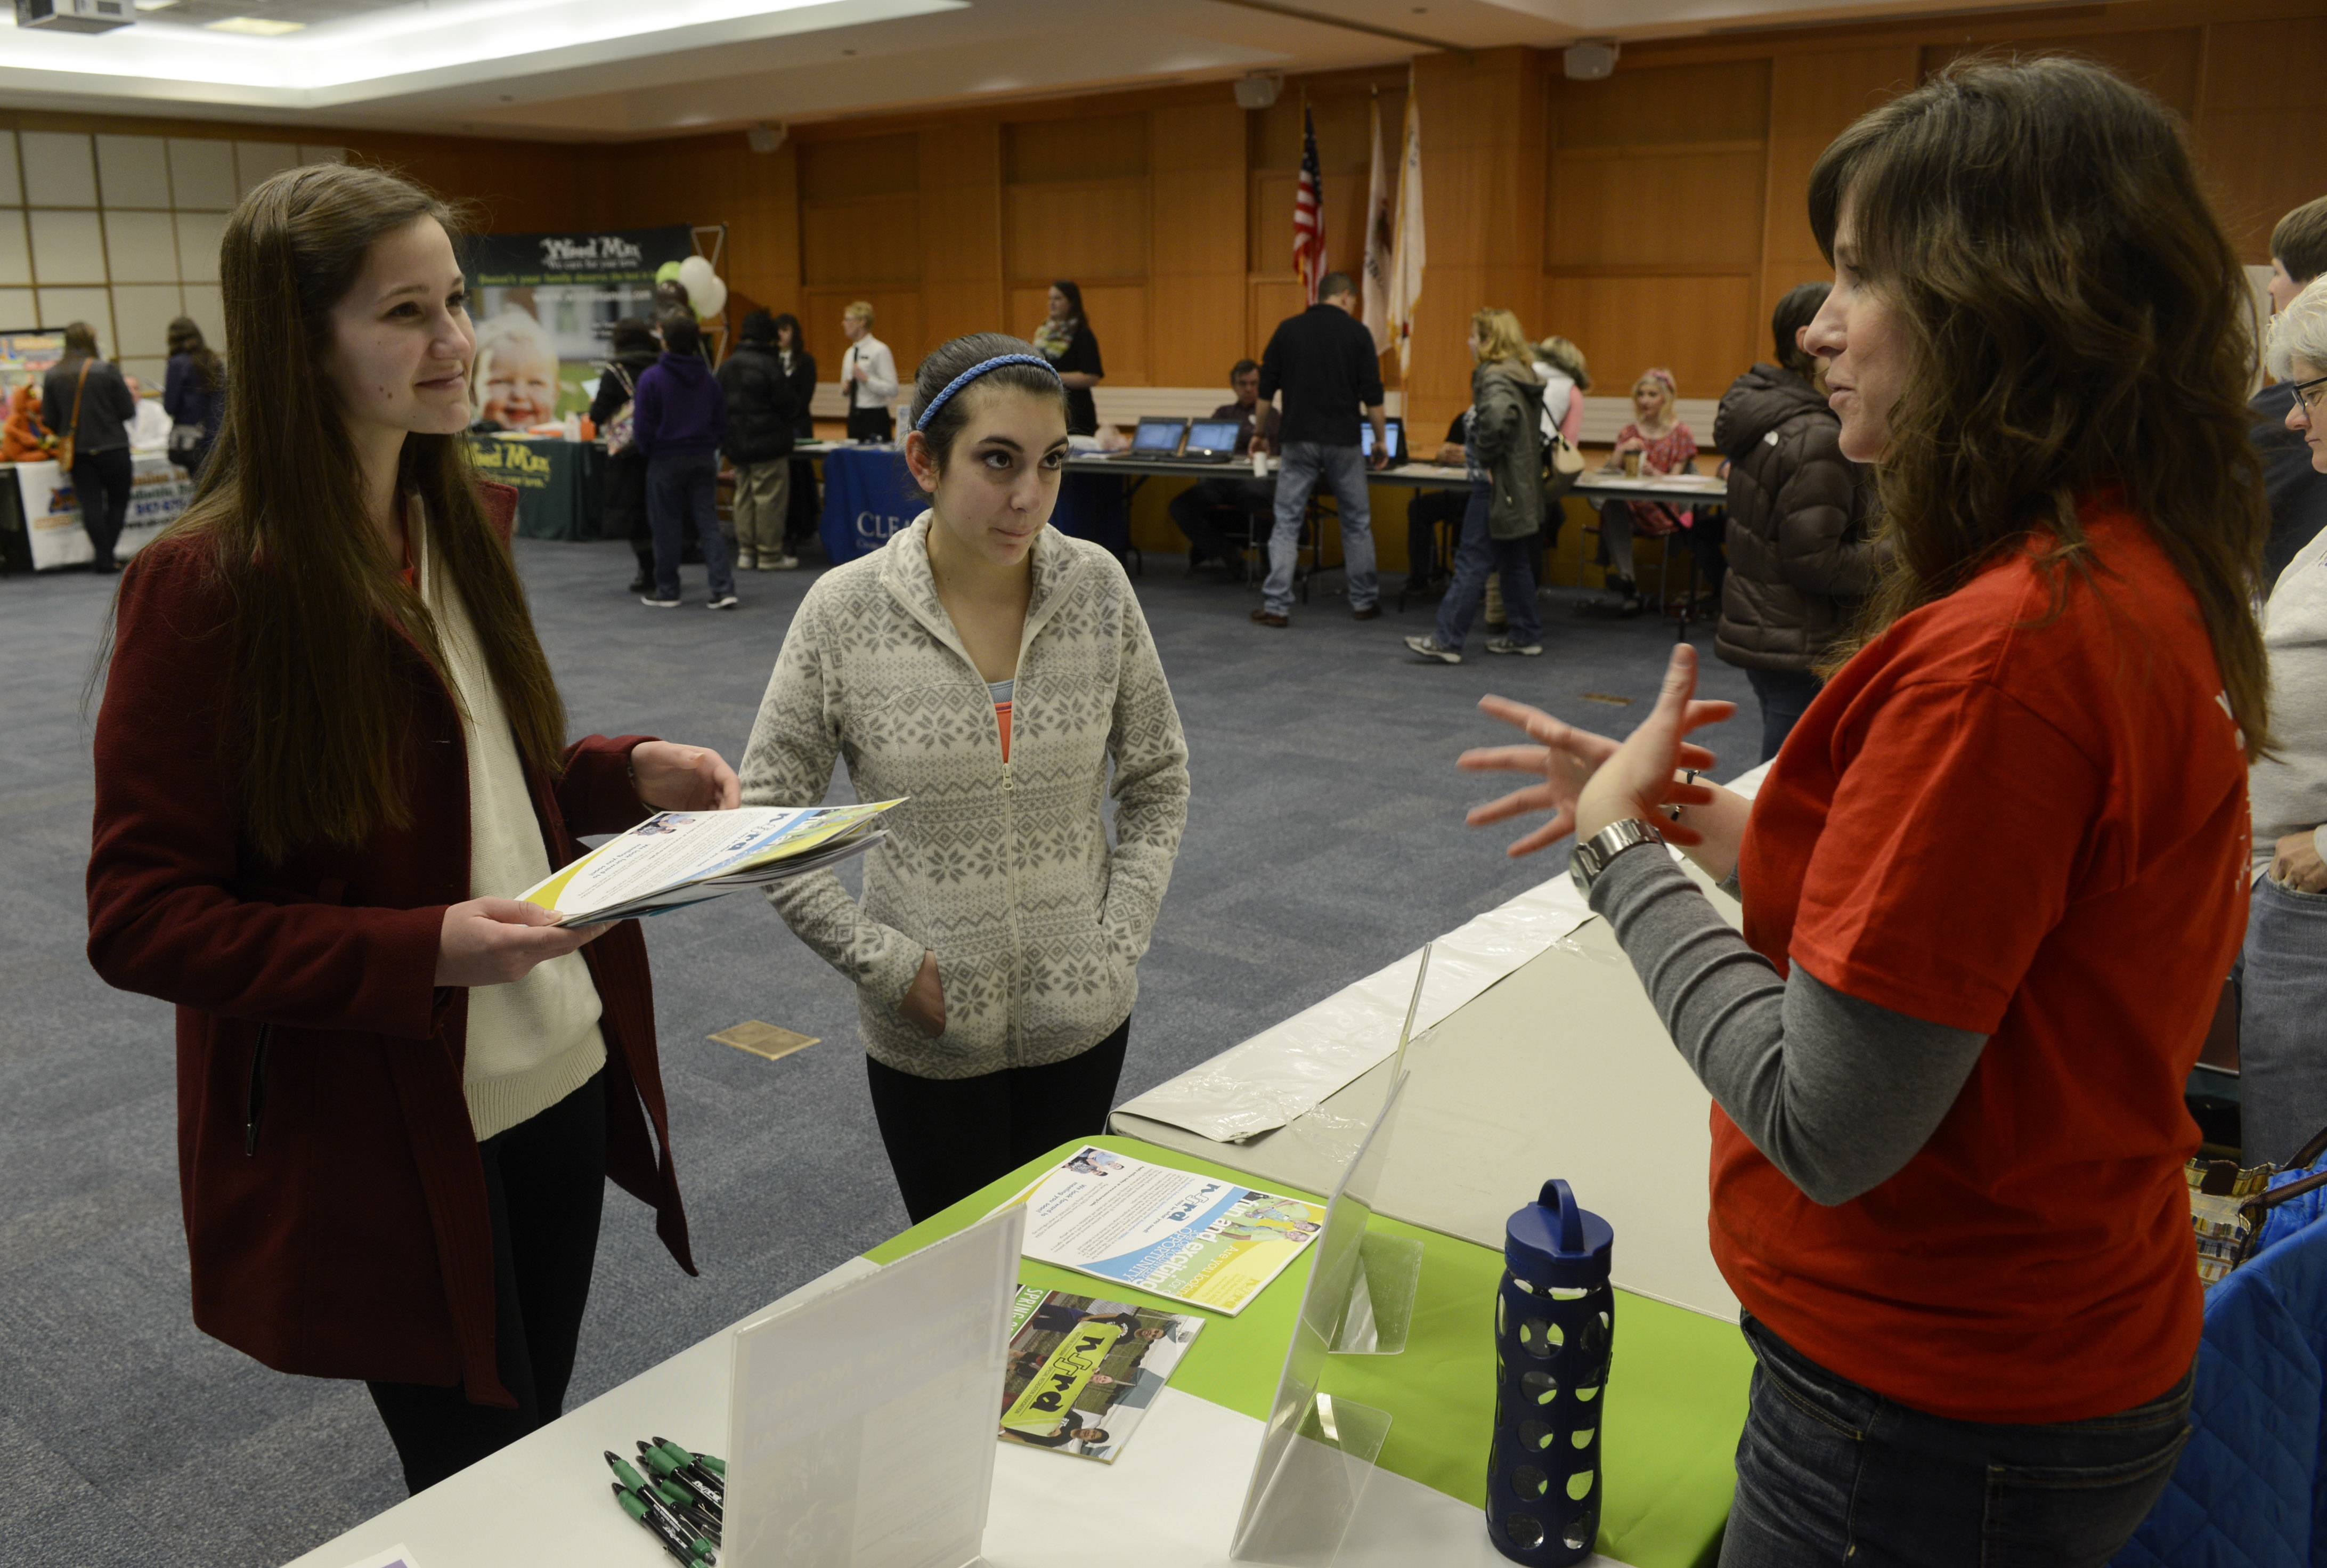 Morgan Buckley, left, and Camille Carso, both 16-year-old Hersey High School students who live in Arlington Heights, speak with Candice Cunningham, superintendent of operations for the North Suburban Special Recreation Association, during the Teen Job Fair Saturday at the Arlington Heights Memorial Library.